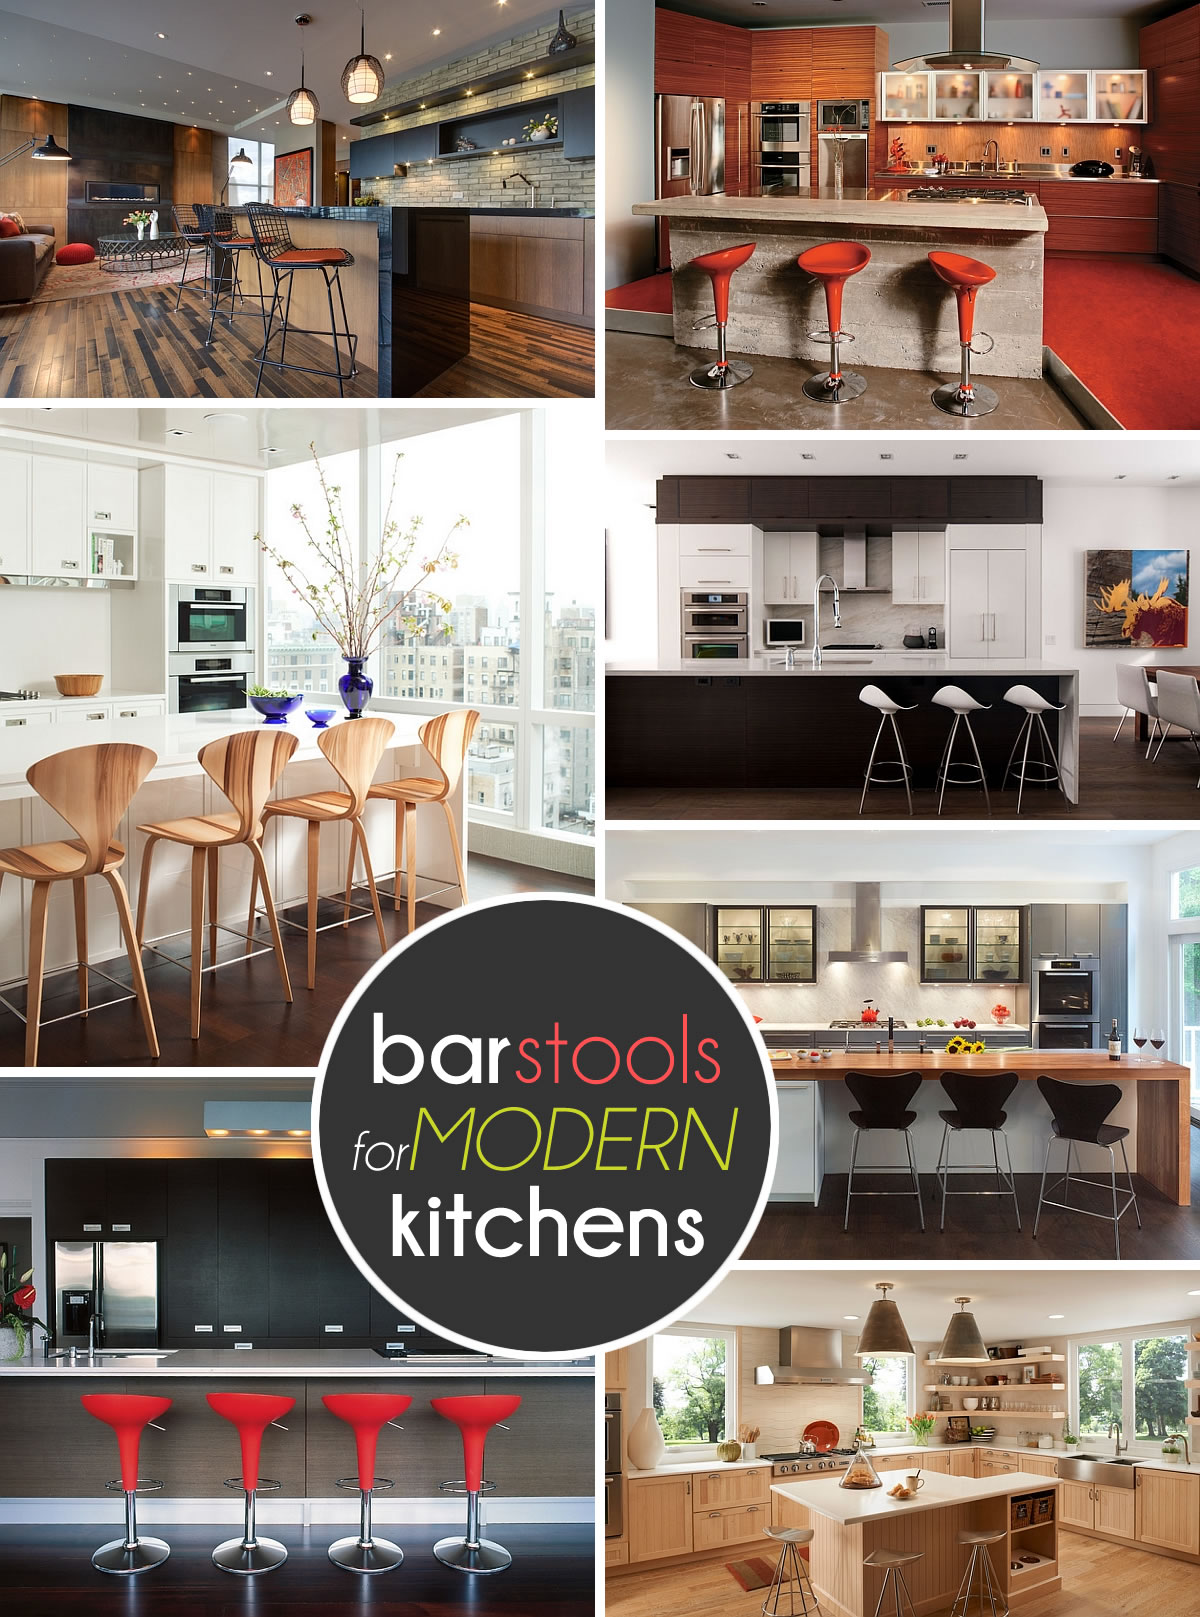 Modern kitchen bar stools - Modern Kitchen Bar Stools